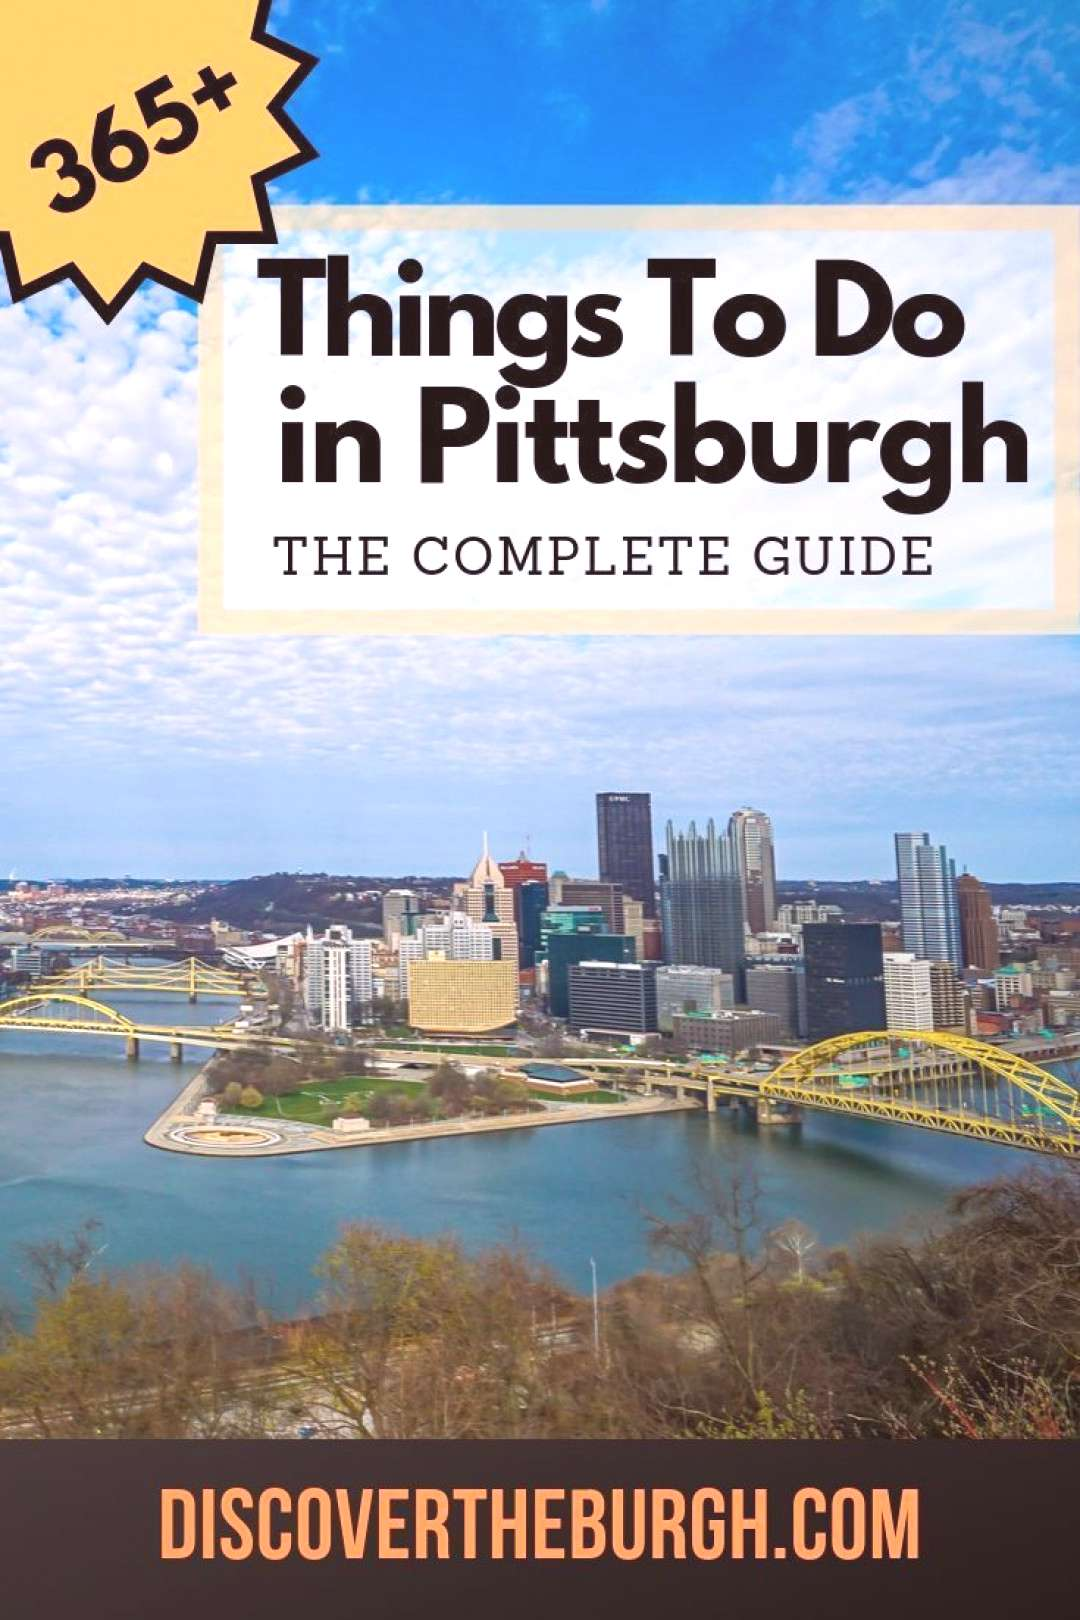 The Complete Guide of Things to Do in Pittsburgh and Southwest PA Looking for things to do in Pitts